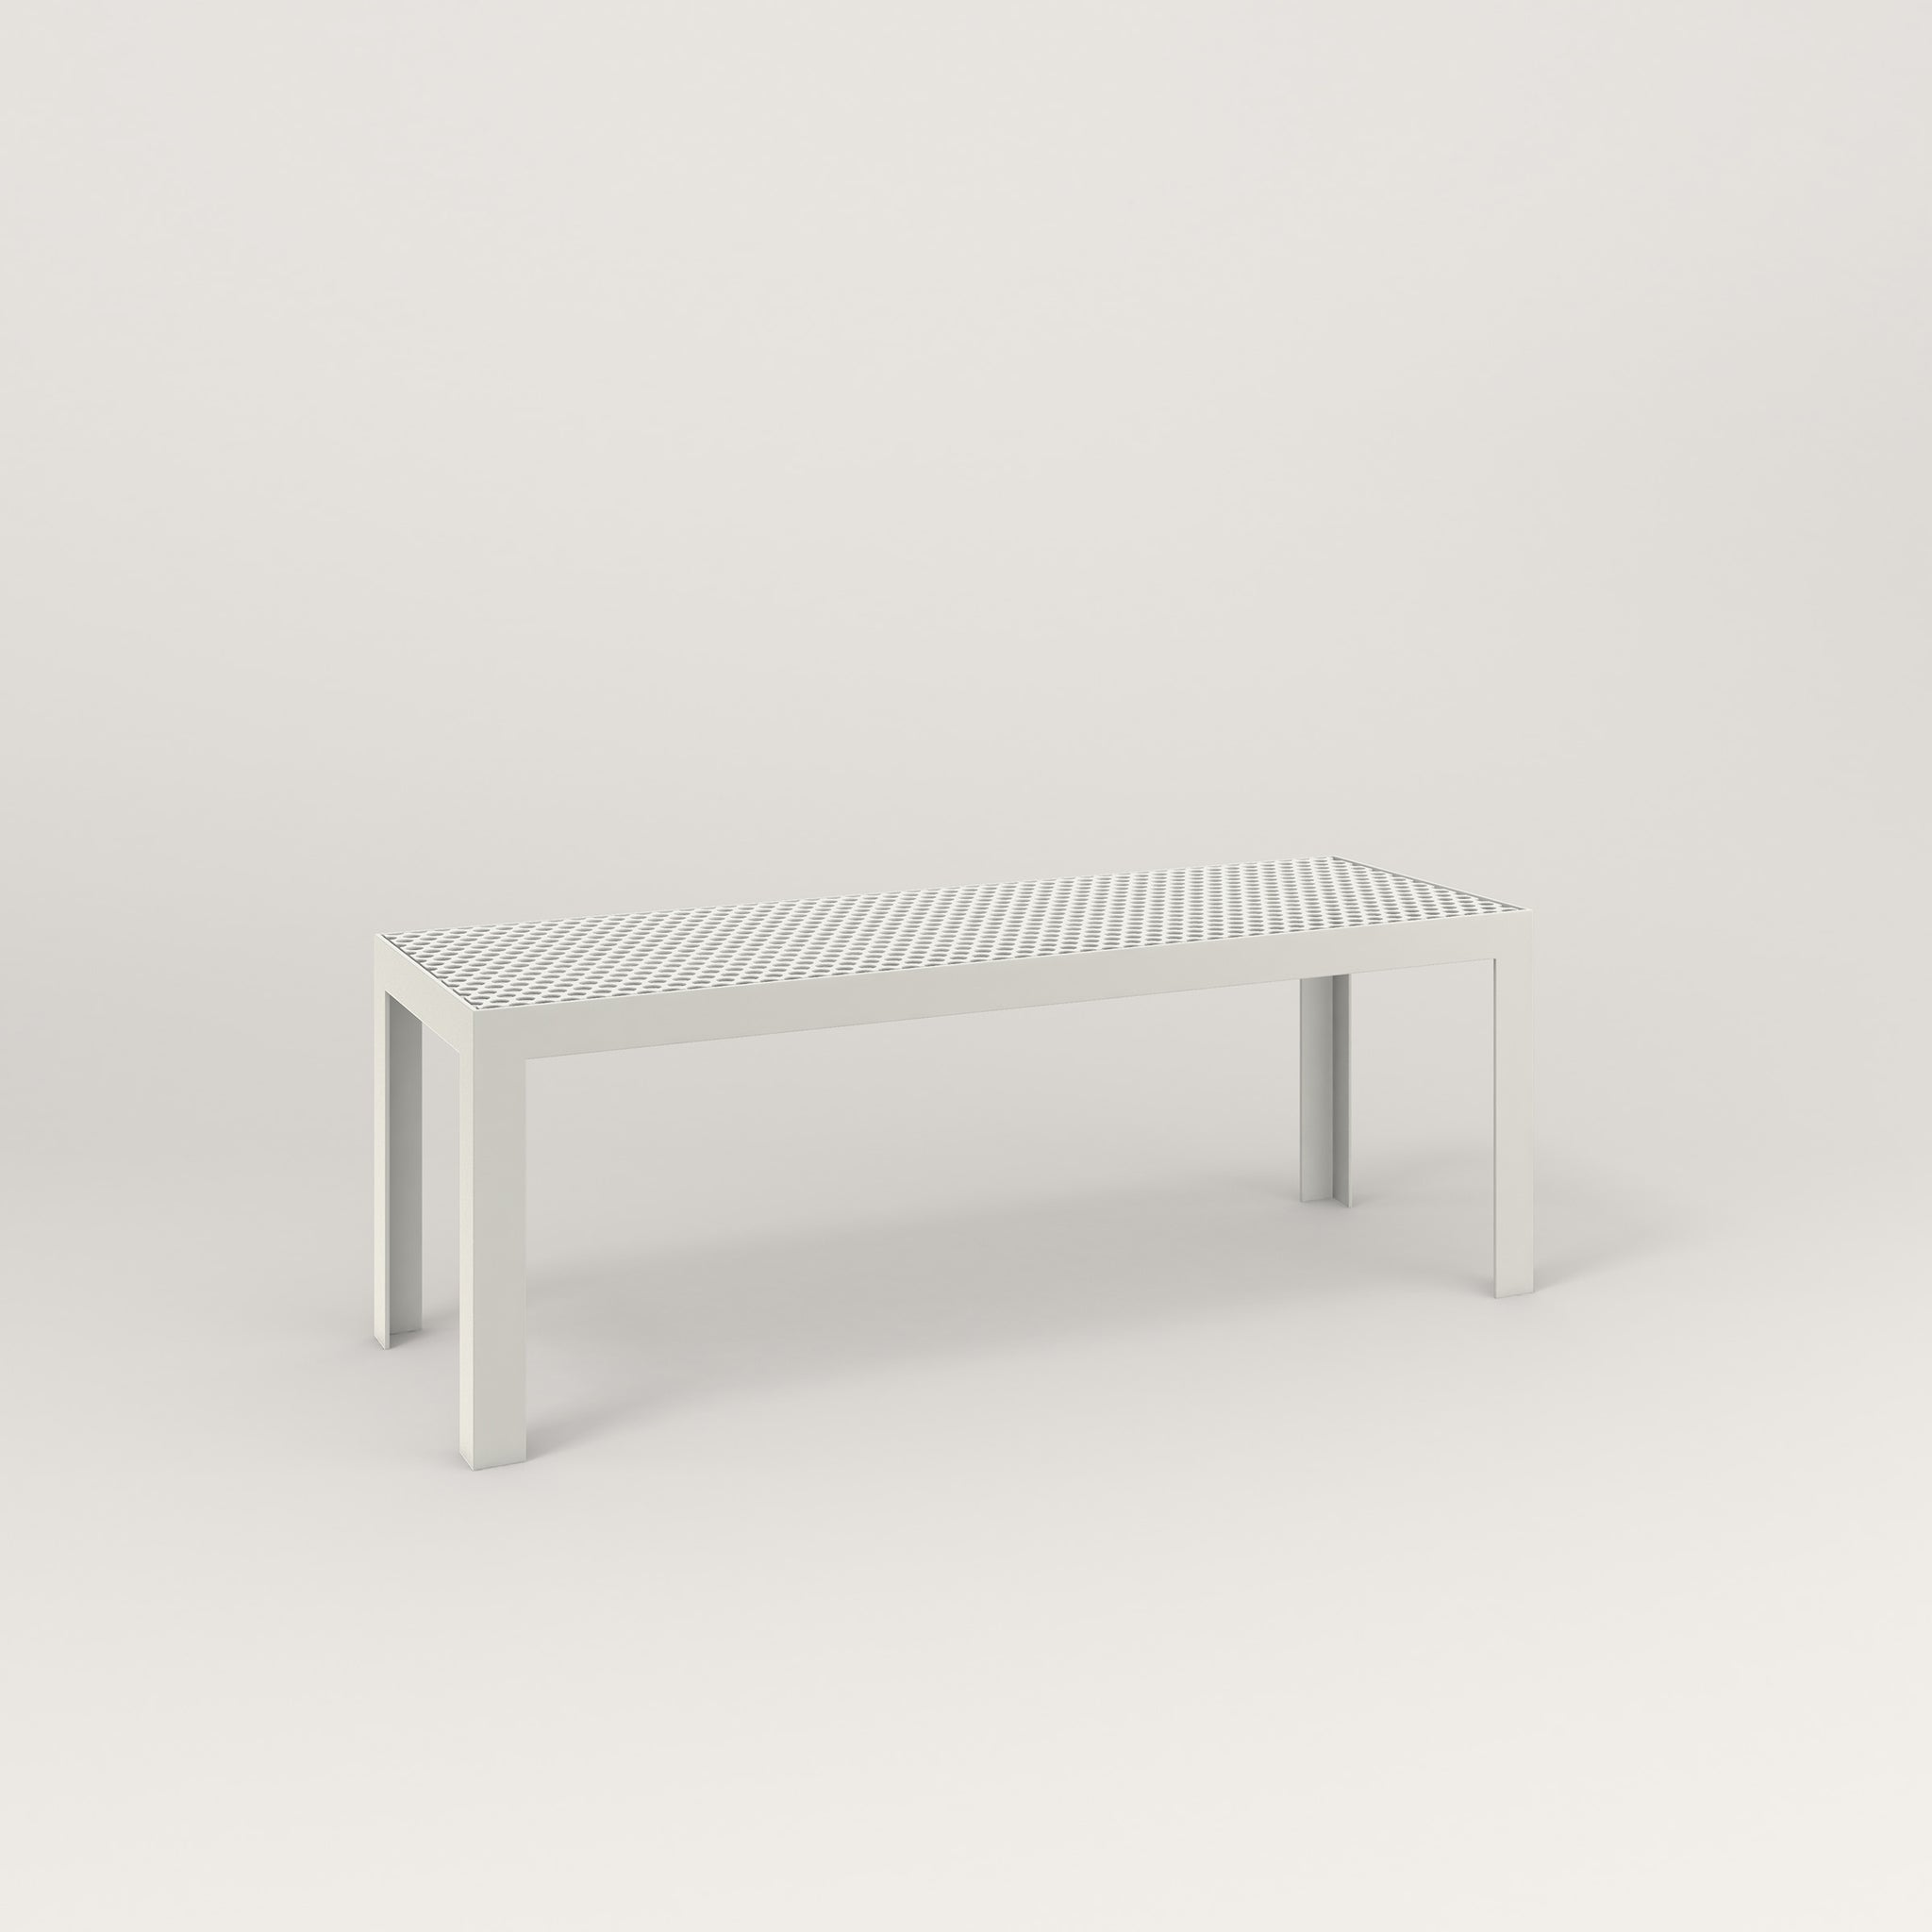 RAD Signature Bench in perforated steel and white powder coat.